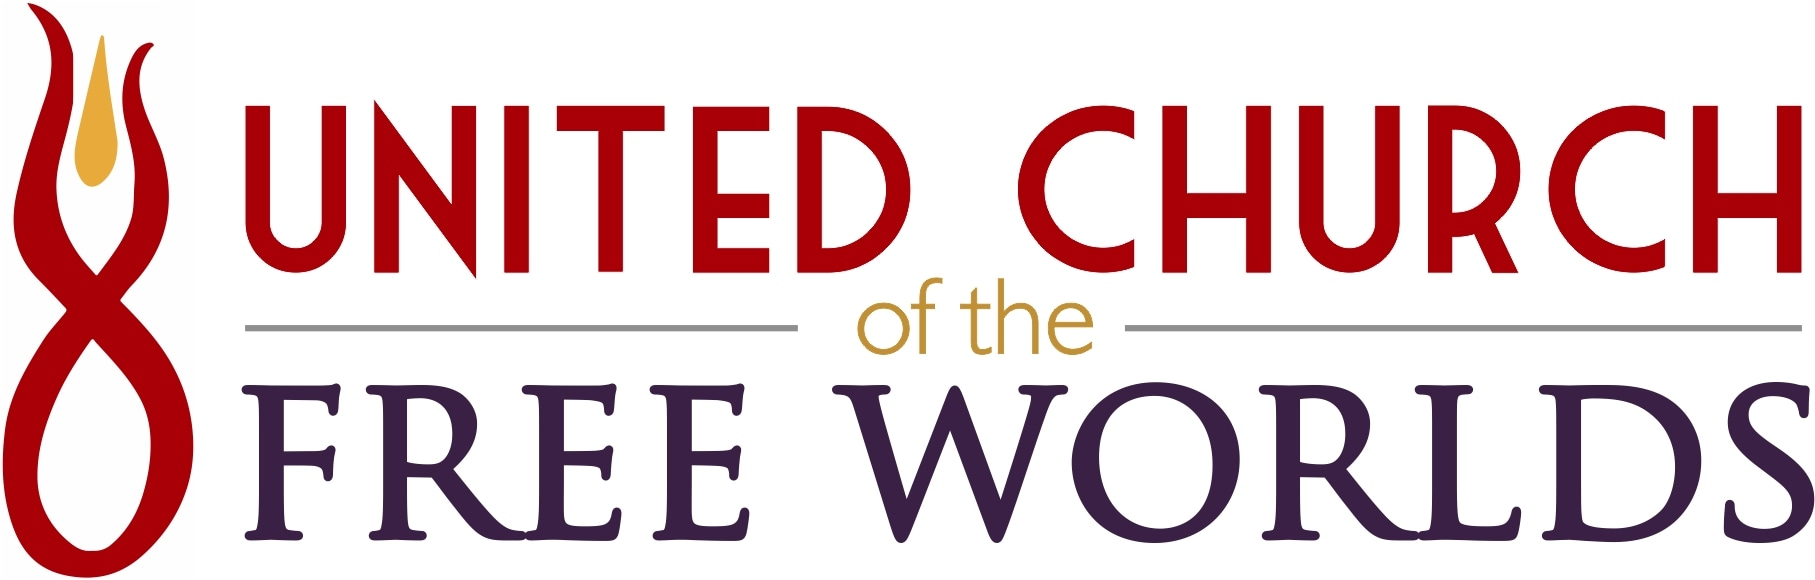 United Church of the Free Worlds promo codes